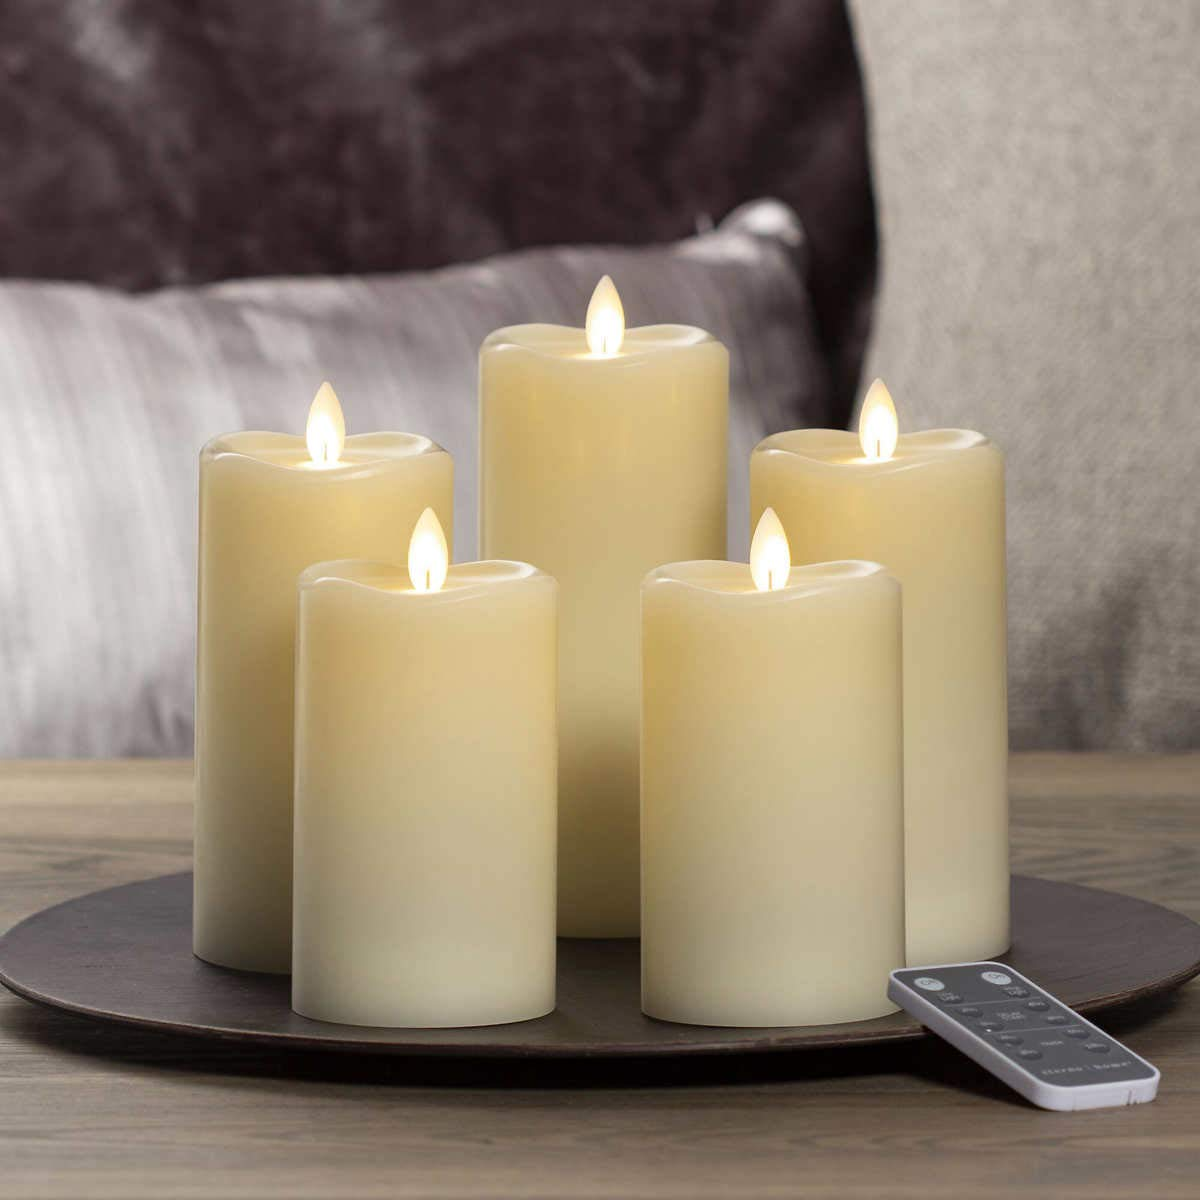 Sterno Home LED Moving Flame Candle, 5-Piece Set by Raysark